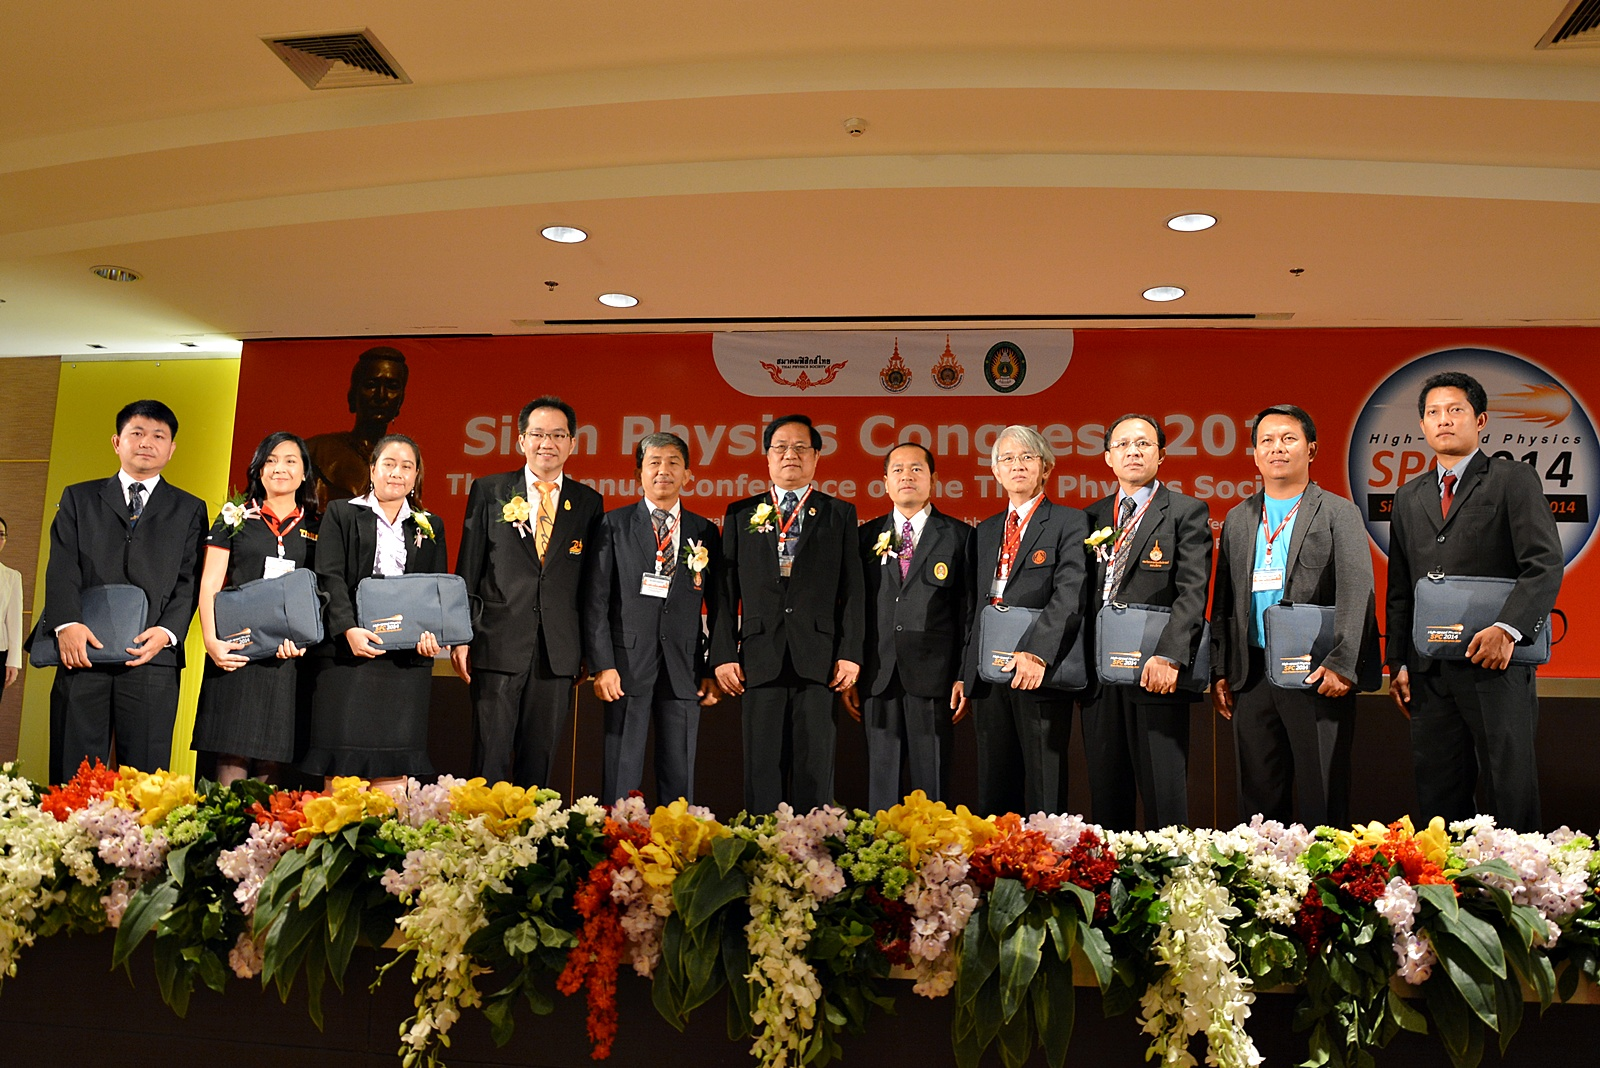 SLRI joins opening of 9th Siam Physics Congress 2014 (SPC 2014)